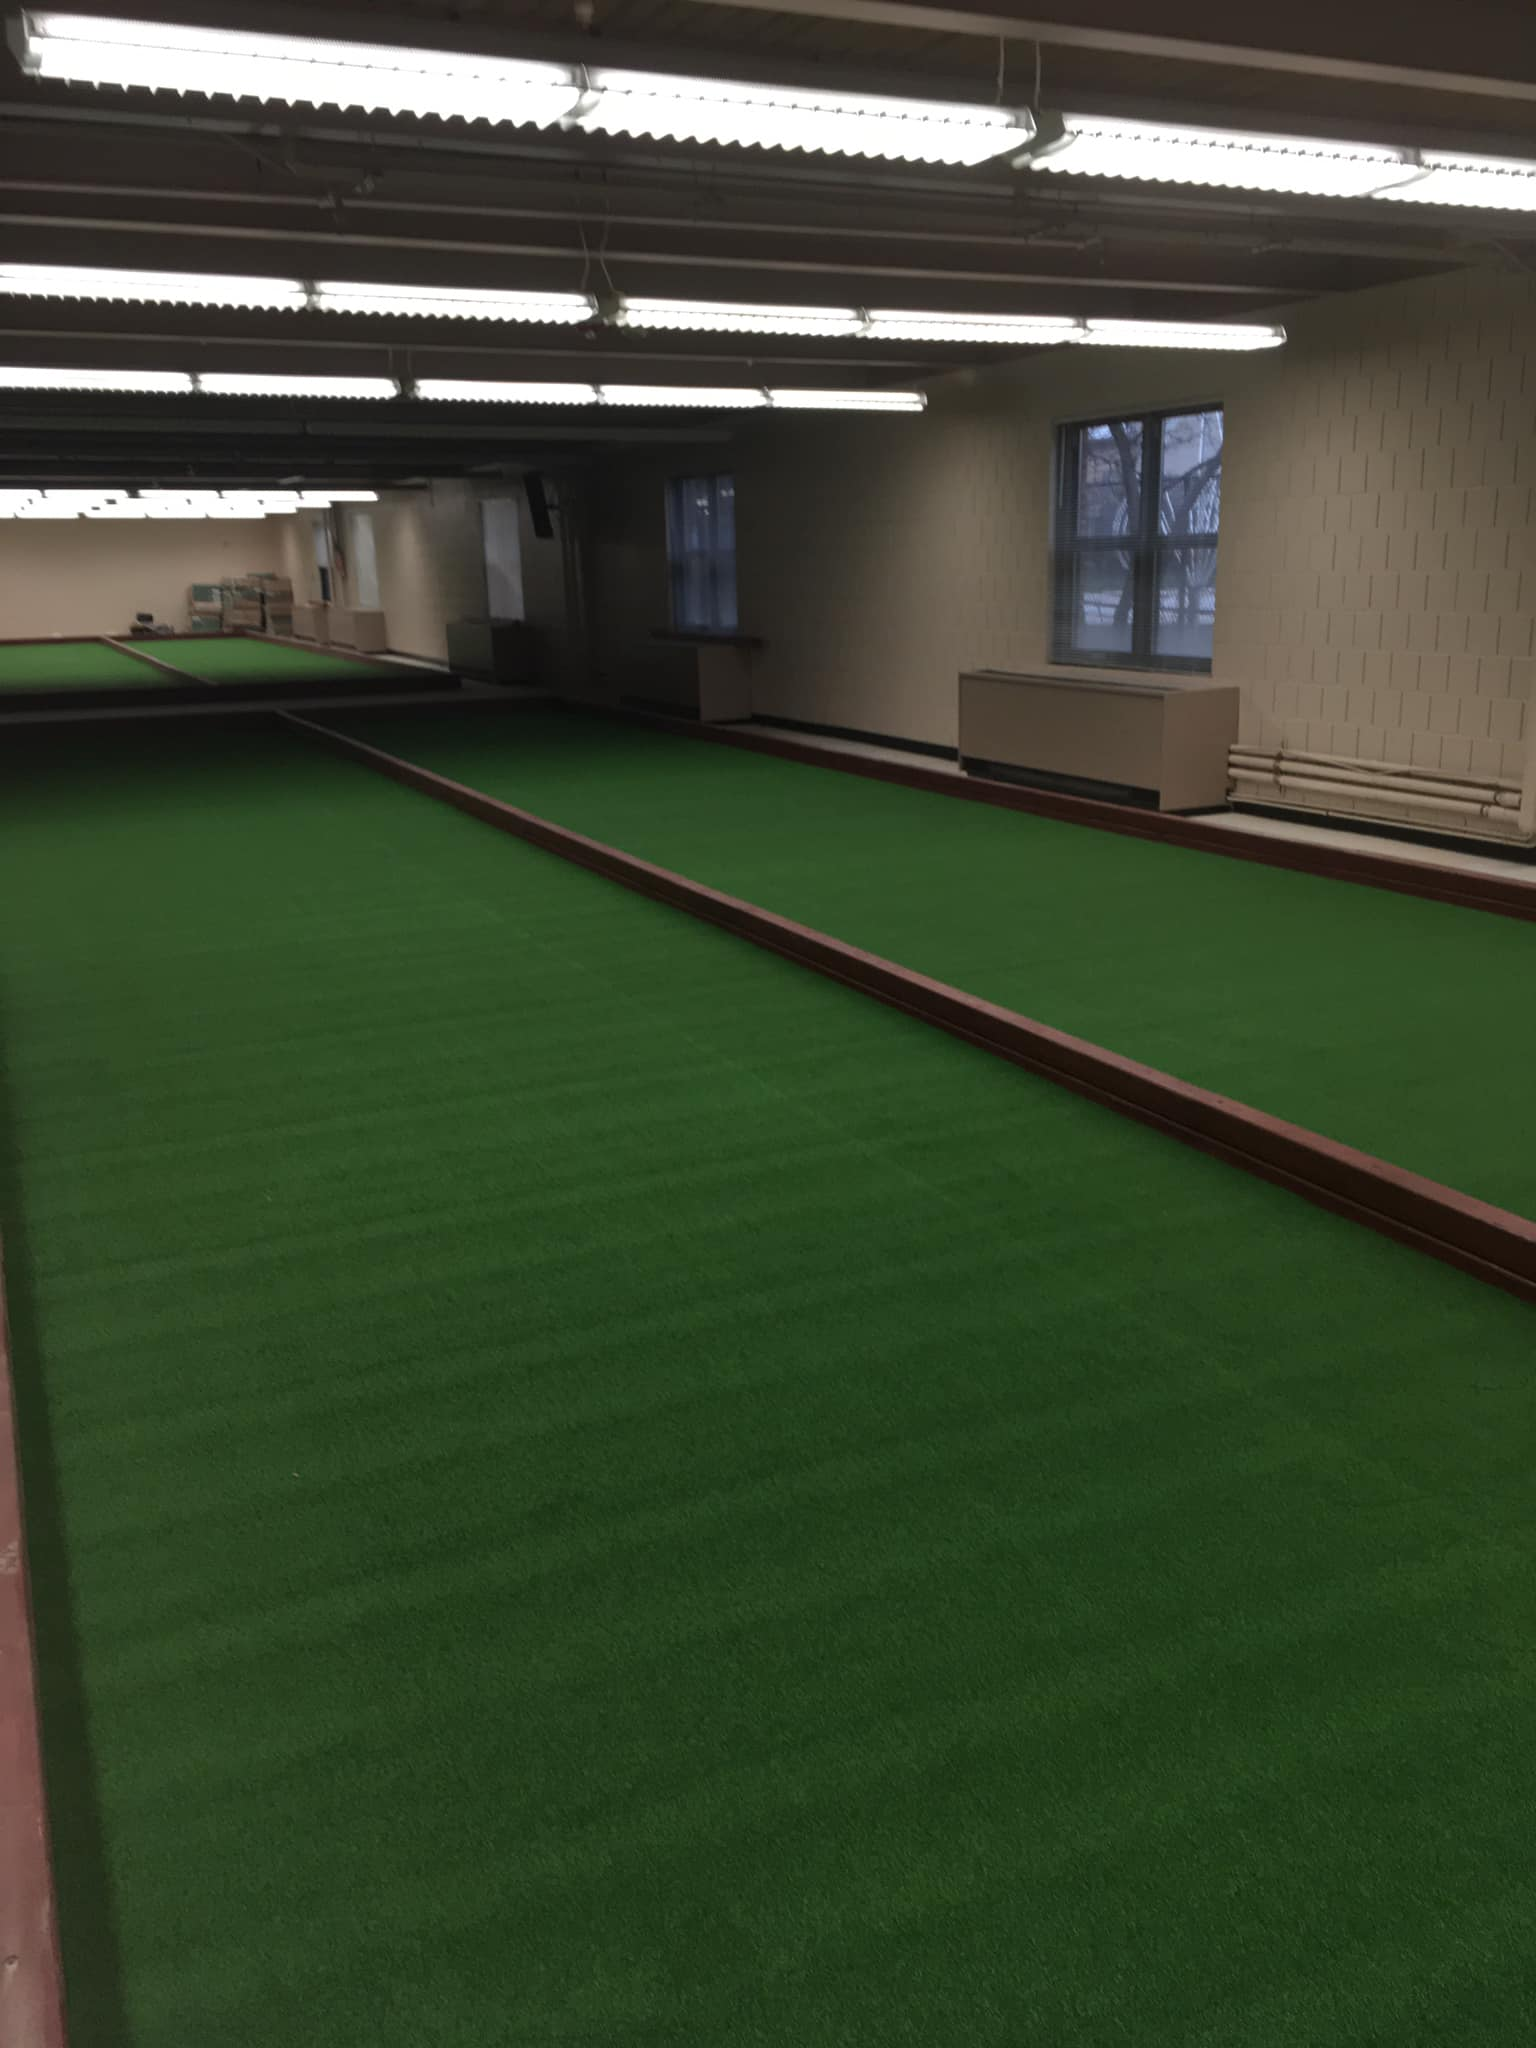 2021 Elmwood Park (IL) Winter Bocce League Starts